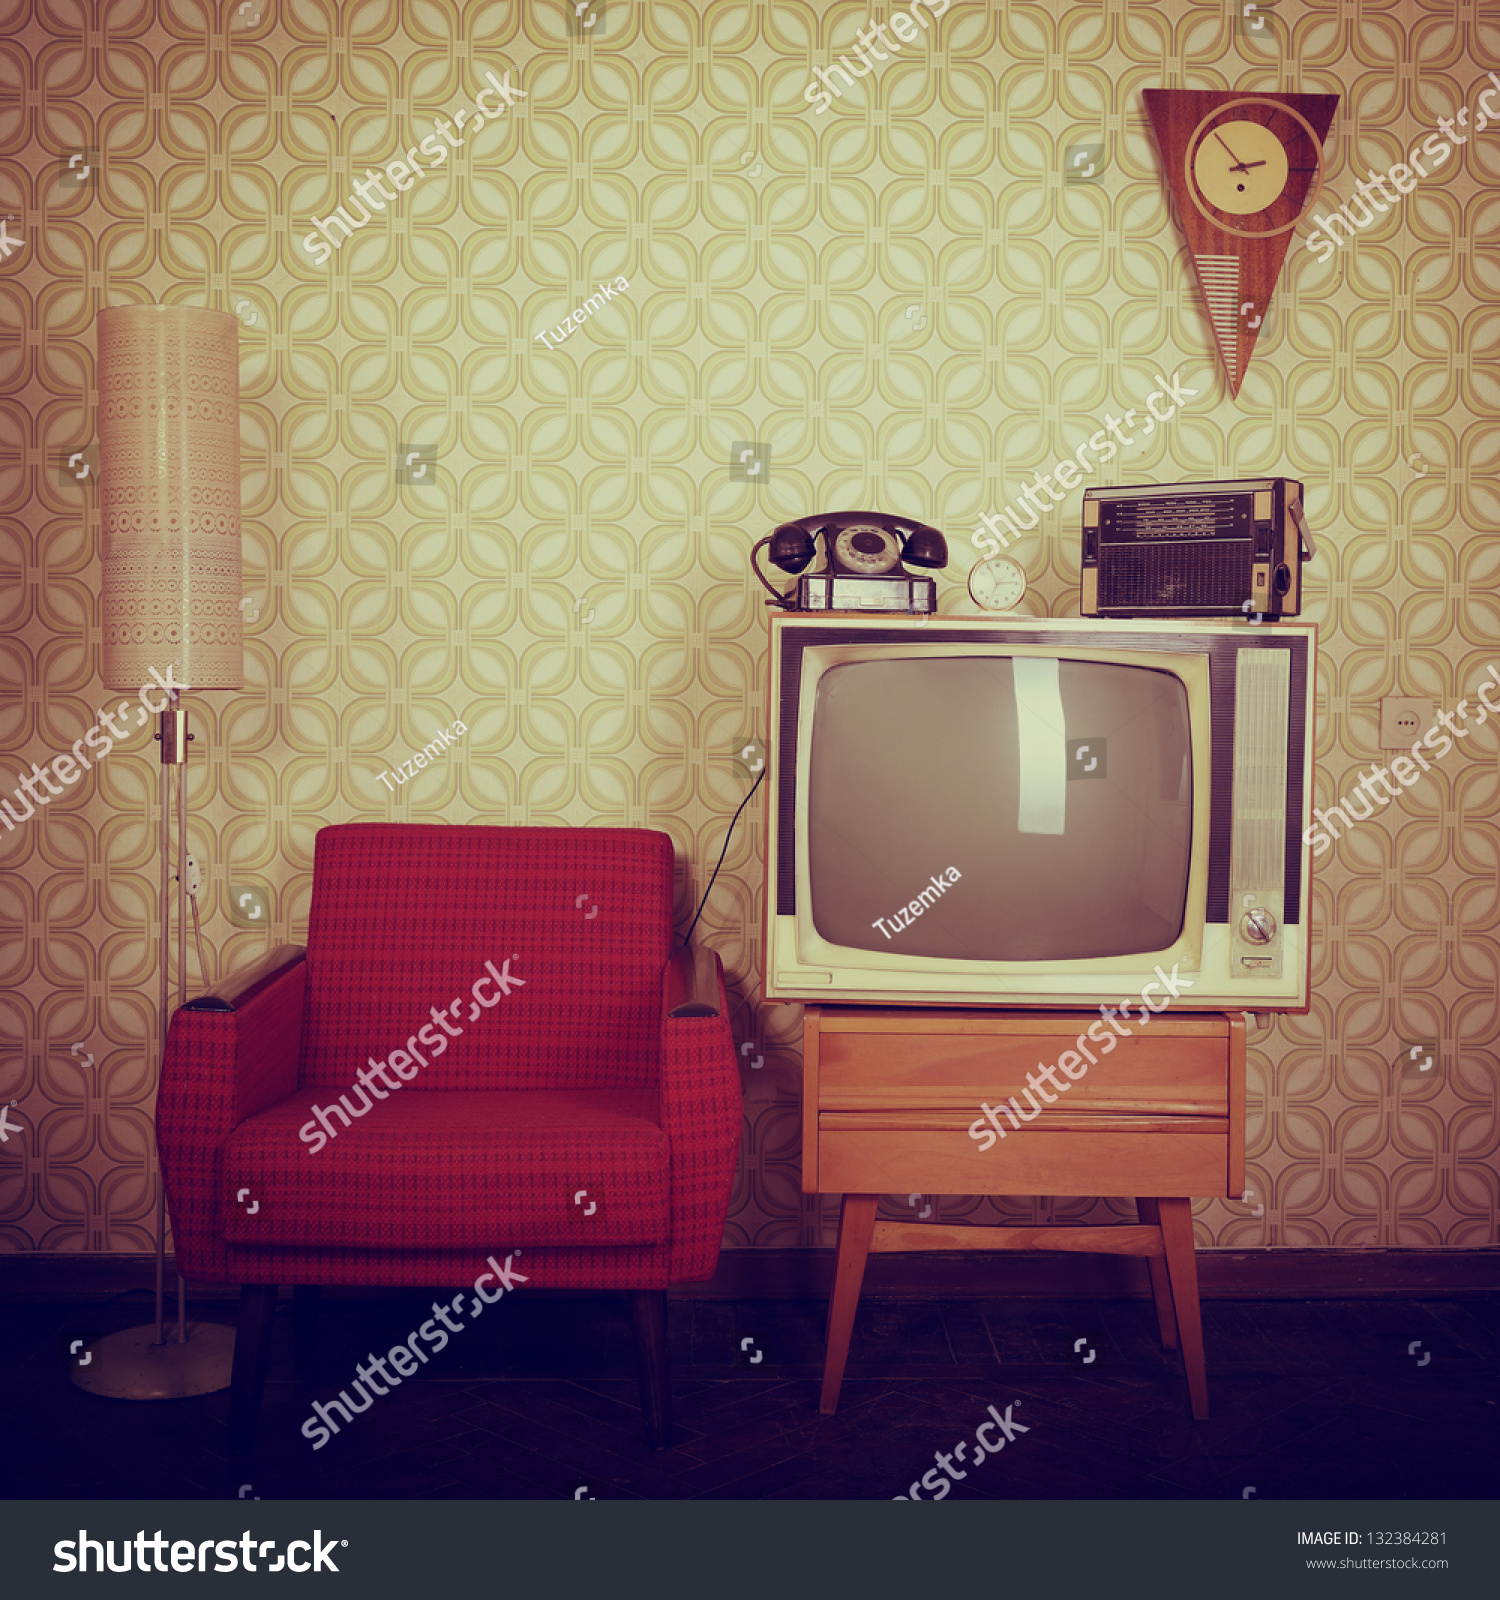 Vintage room with wallpaper, old fashioned armchair, retro tv, phone ...